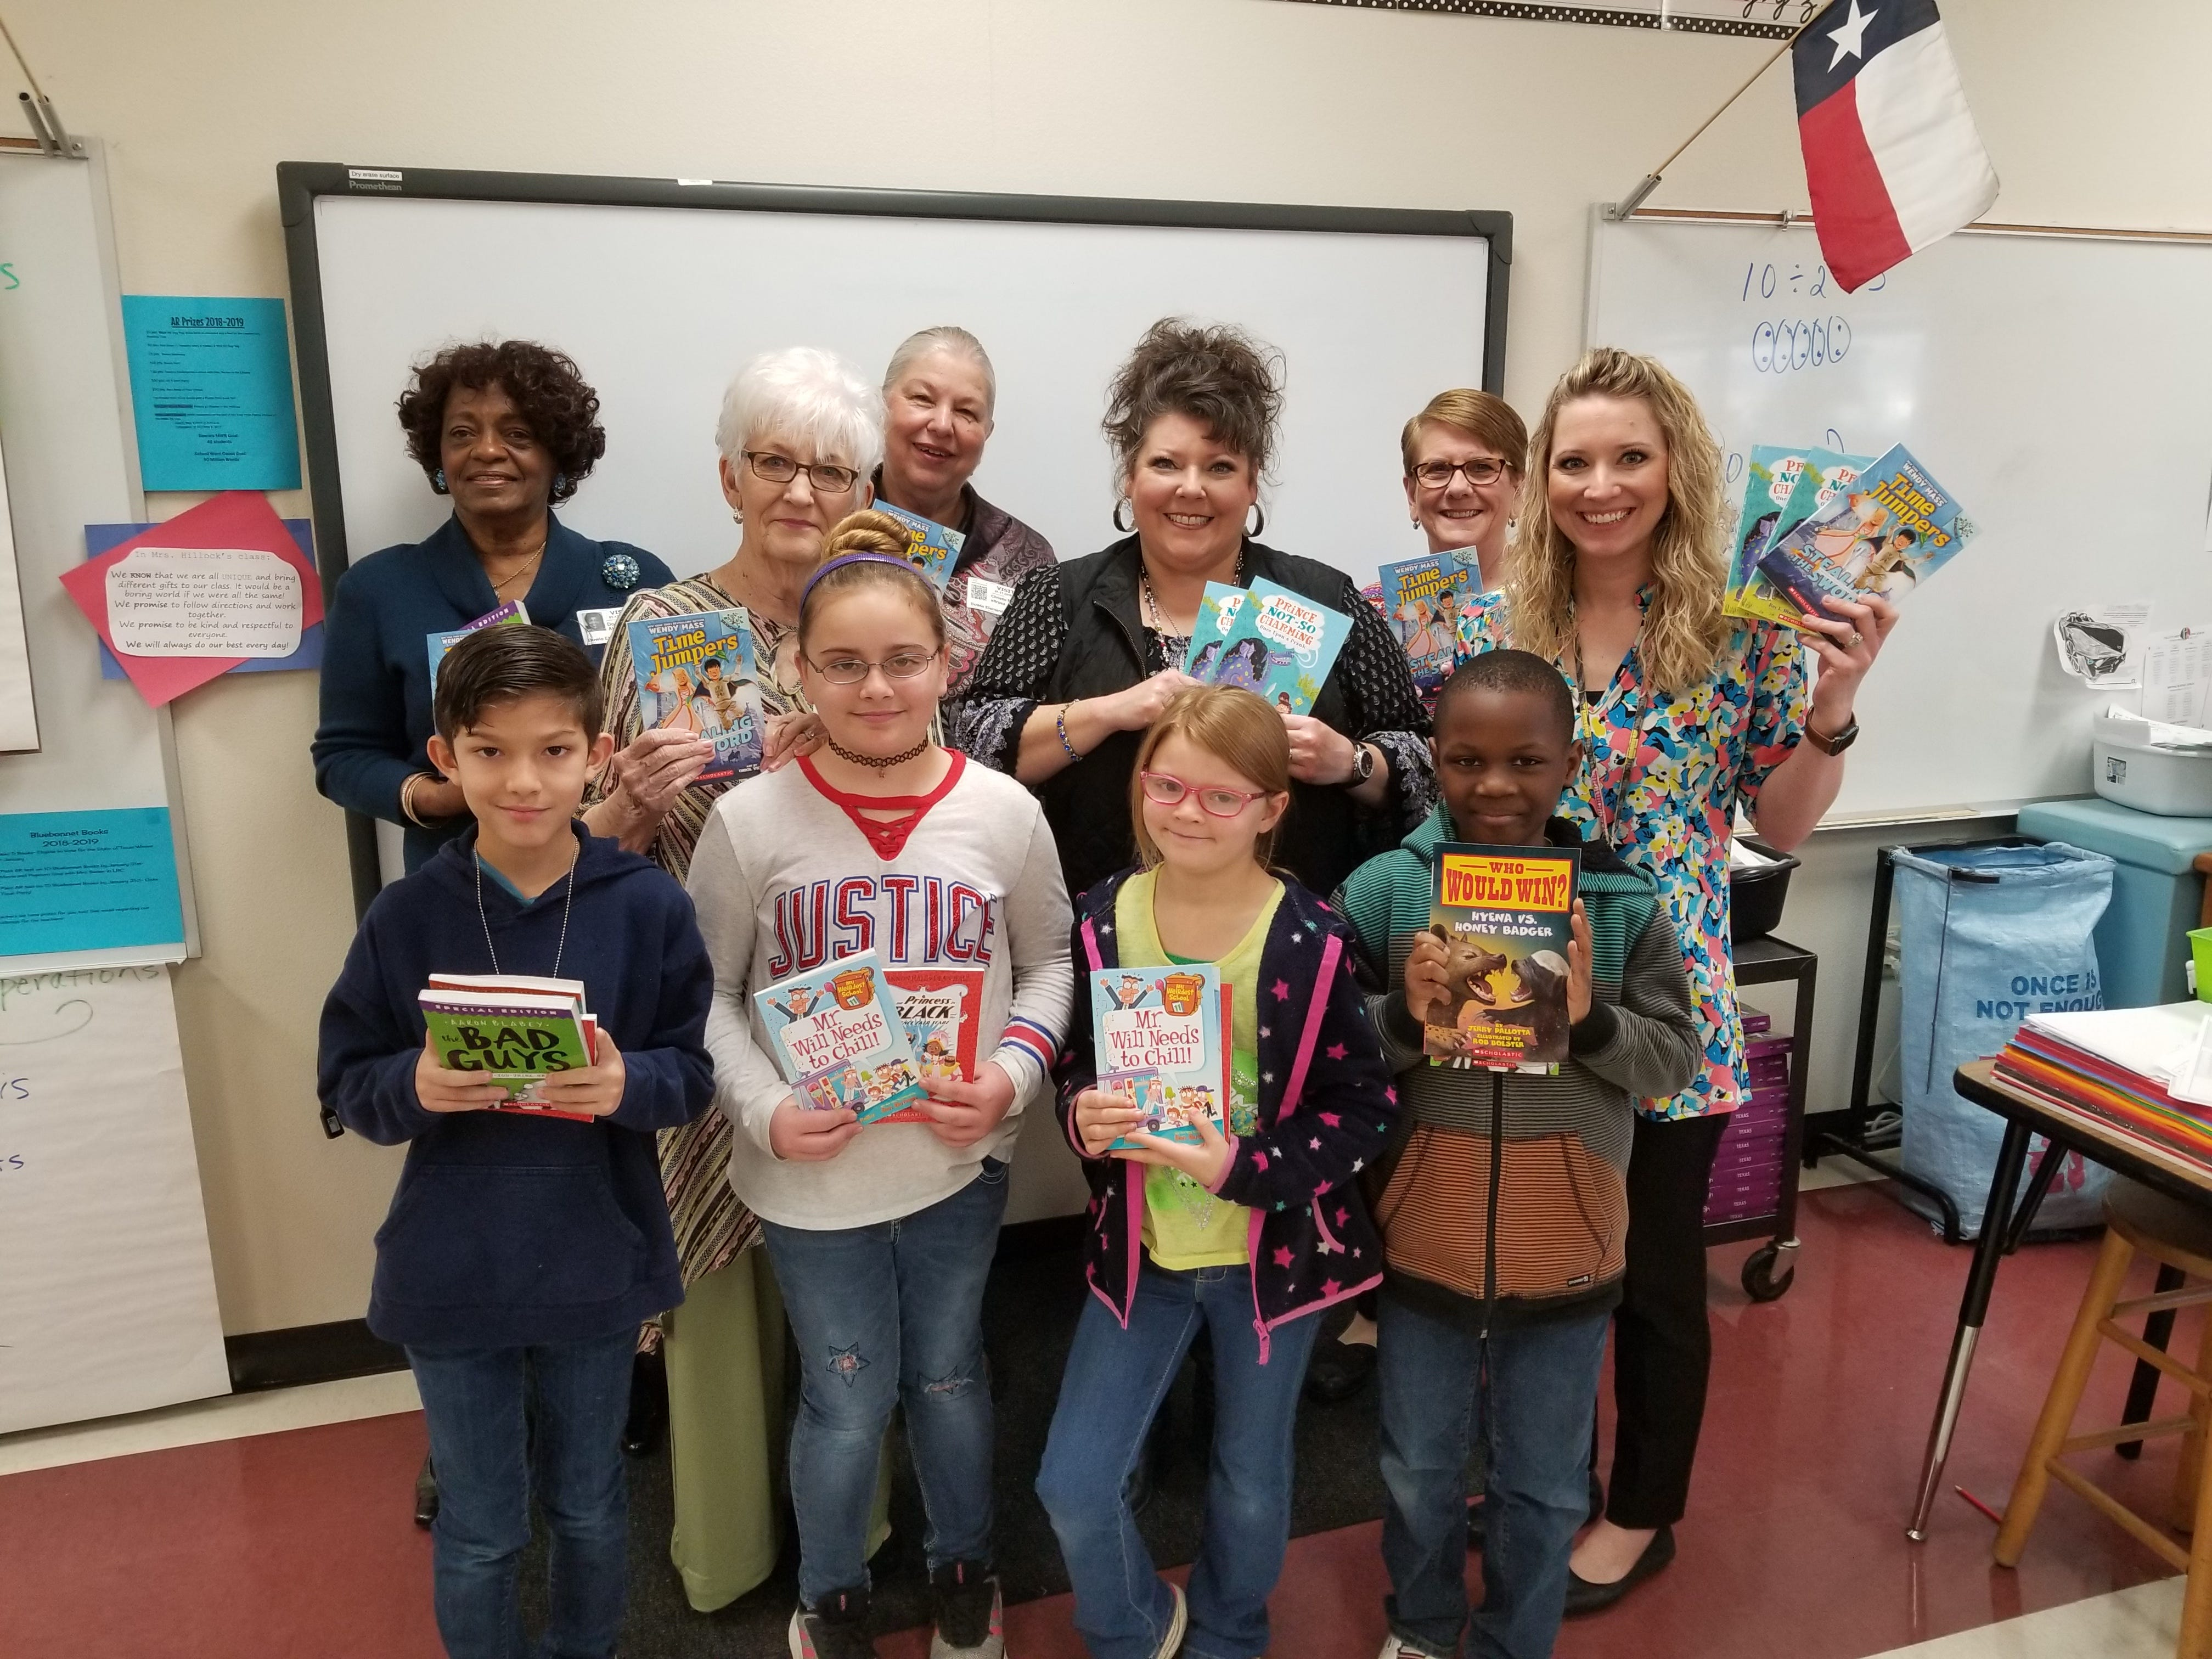 """Members of Altrusa International of Abilene and Bowie Elementary School teachers and students show off some of the books provided by Altrusa's """"Read Every Day"""" grant. Back row, from left: Altrusans Dorthy Drones, Christie Beermann and Gloria Skinner. Middle row: Altrusa president Jo Ann Weinkauf and teachers Michelle Hillock and Jessica Carroll."""